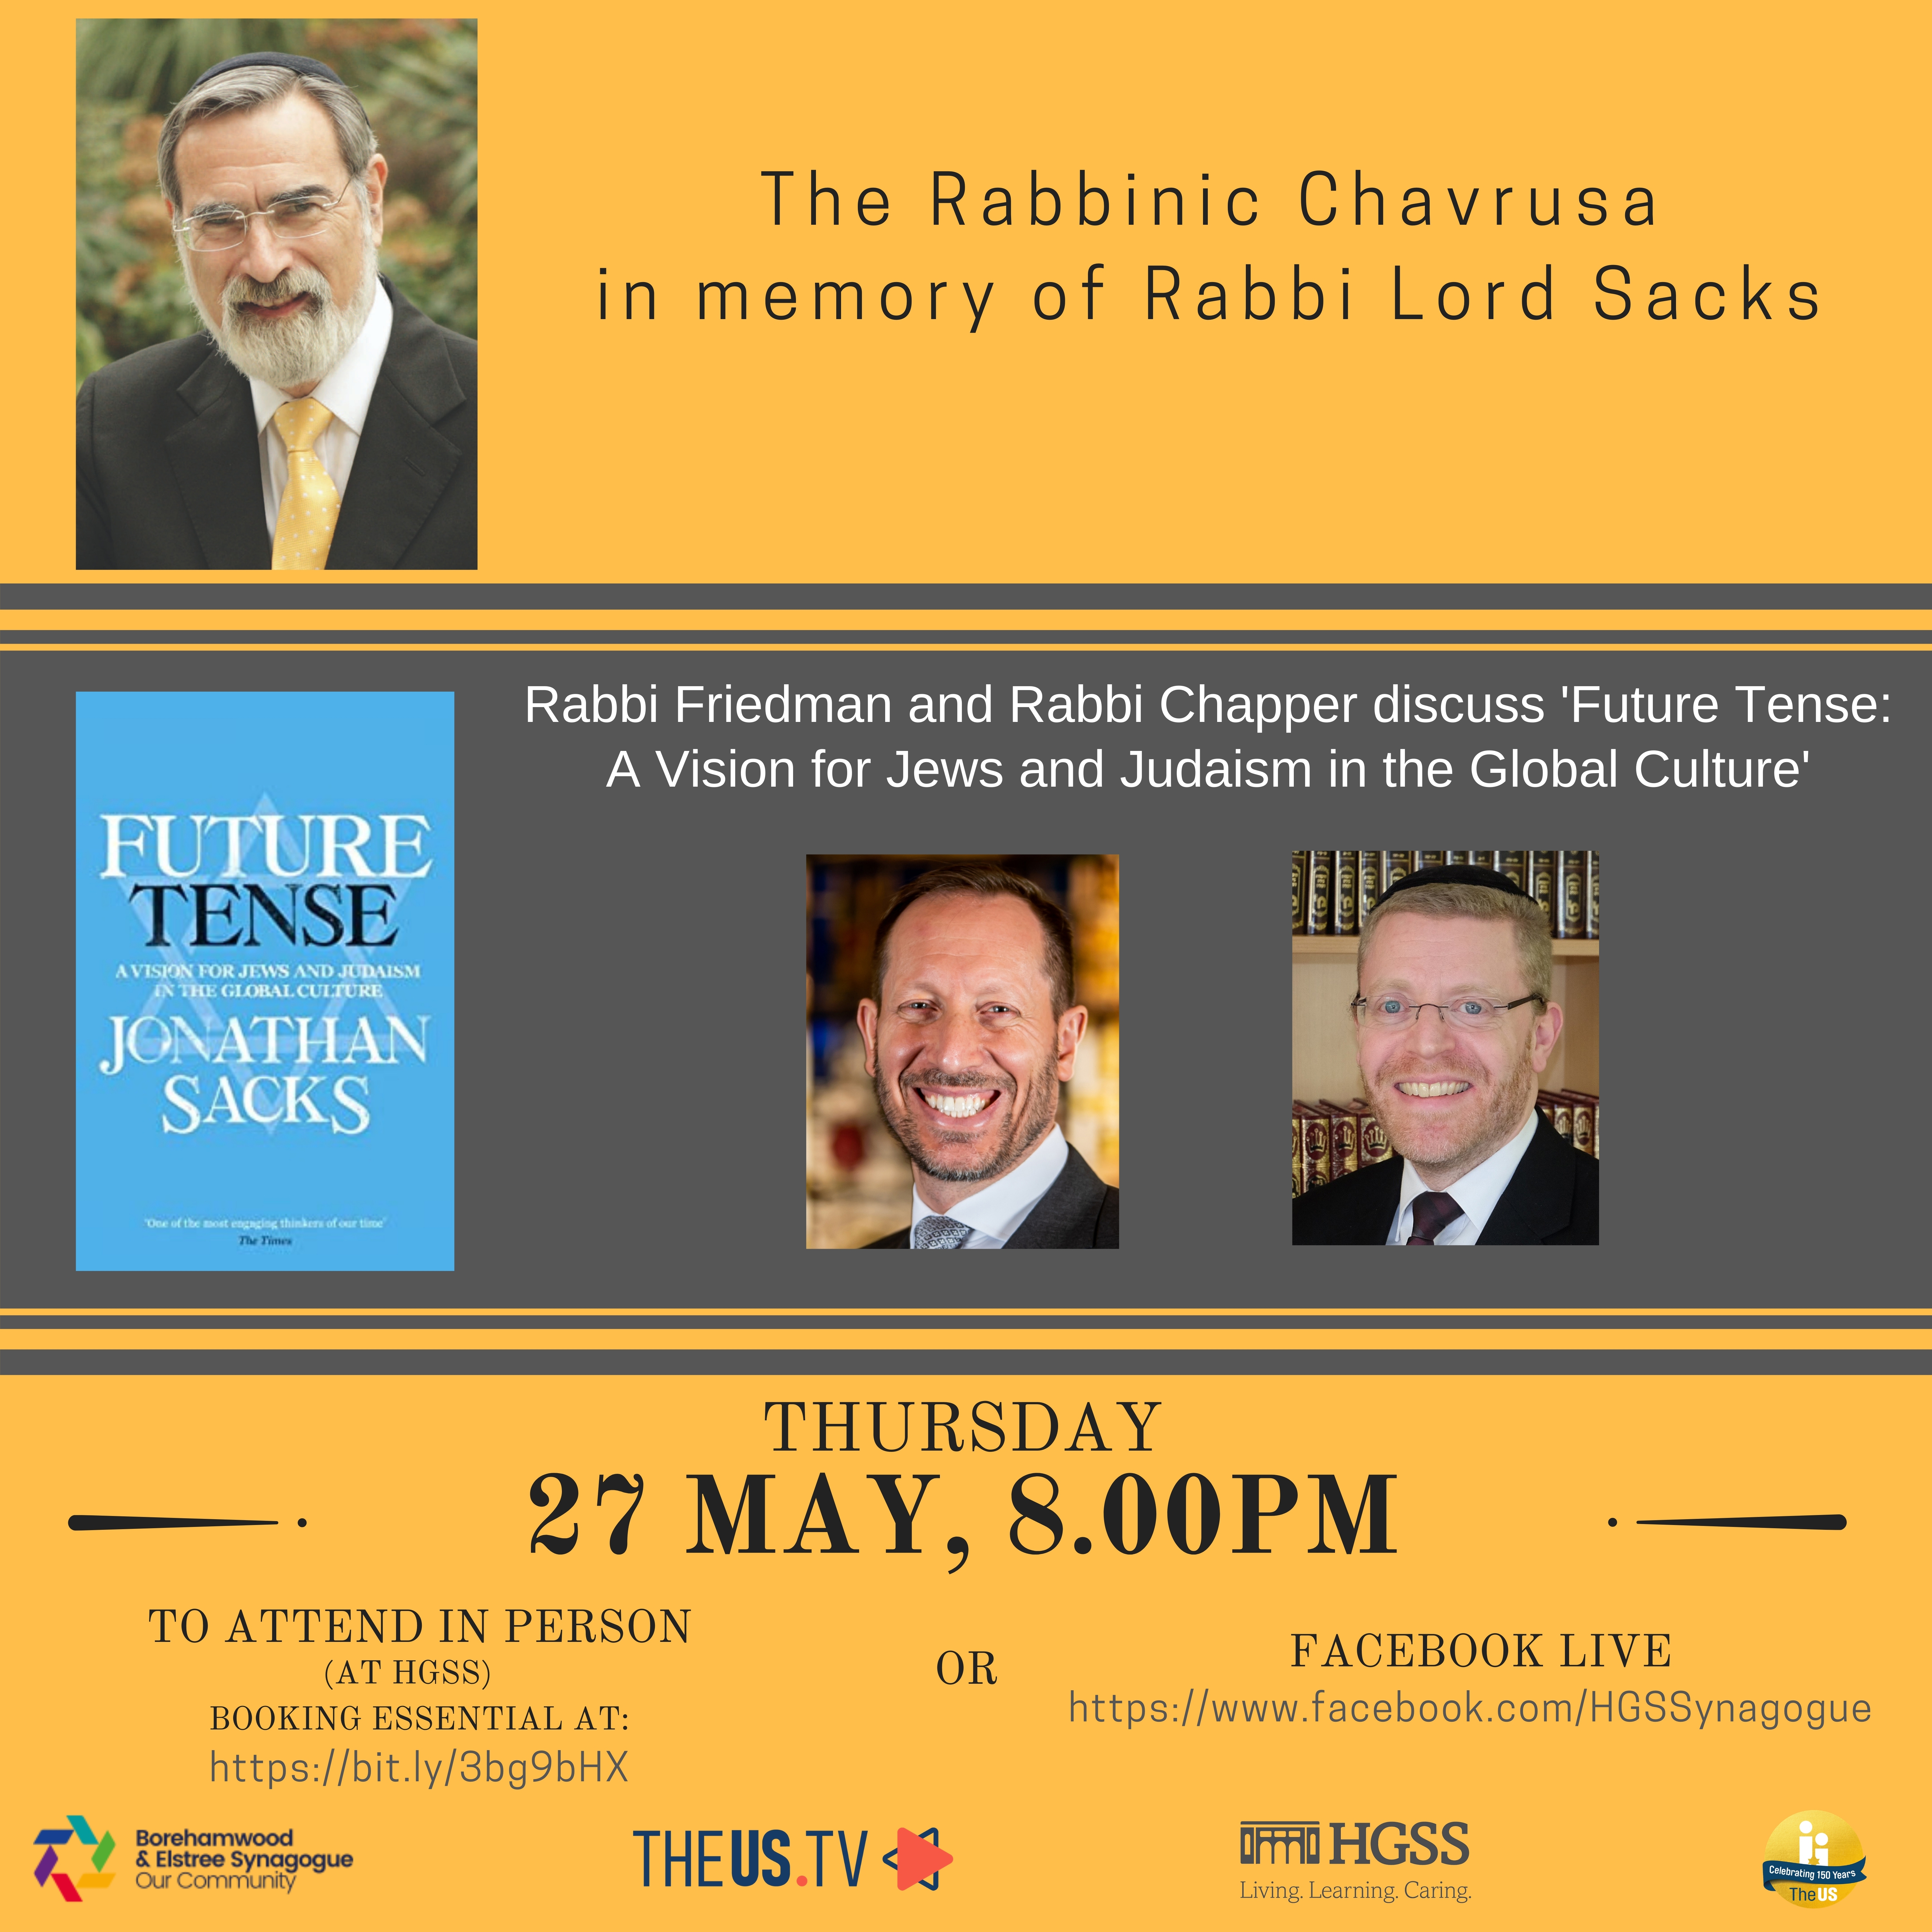 The Rabbinic Chavrusa @ HGSS & Facebook Live